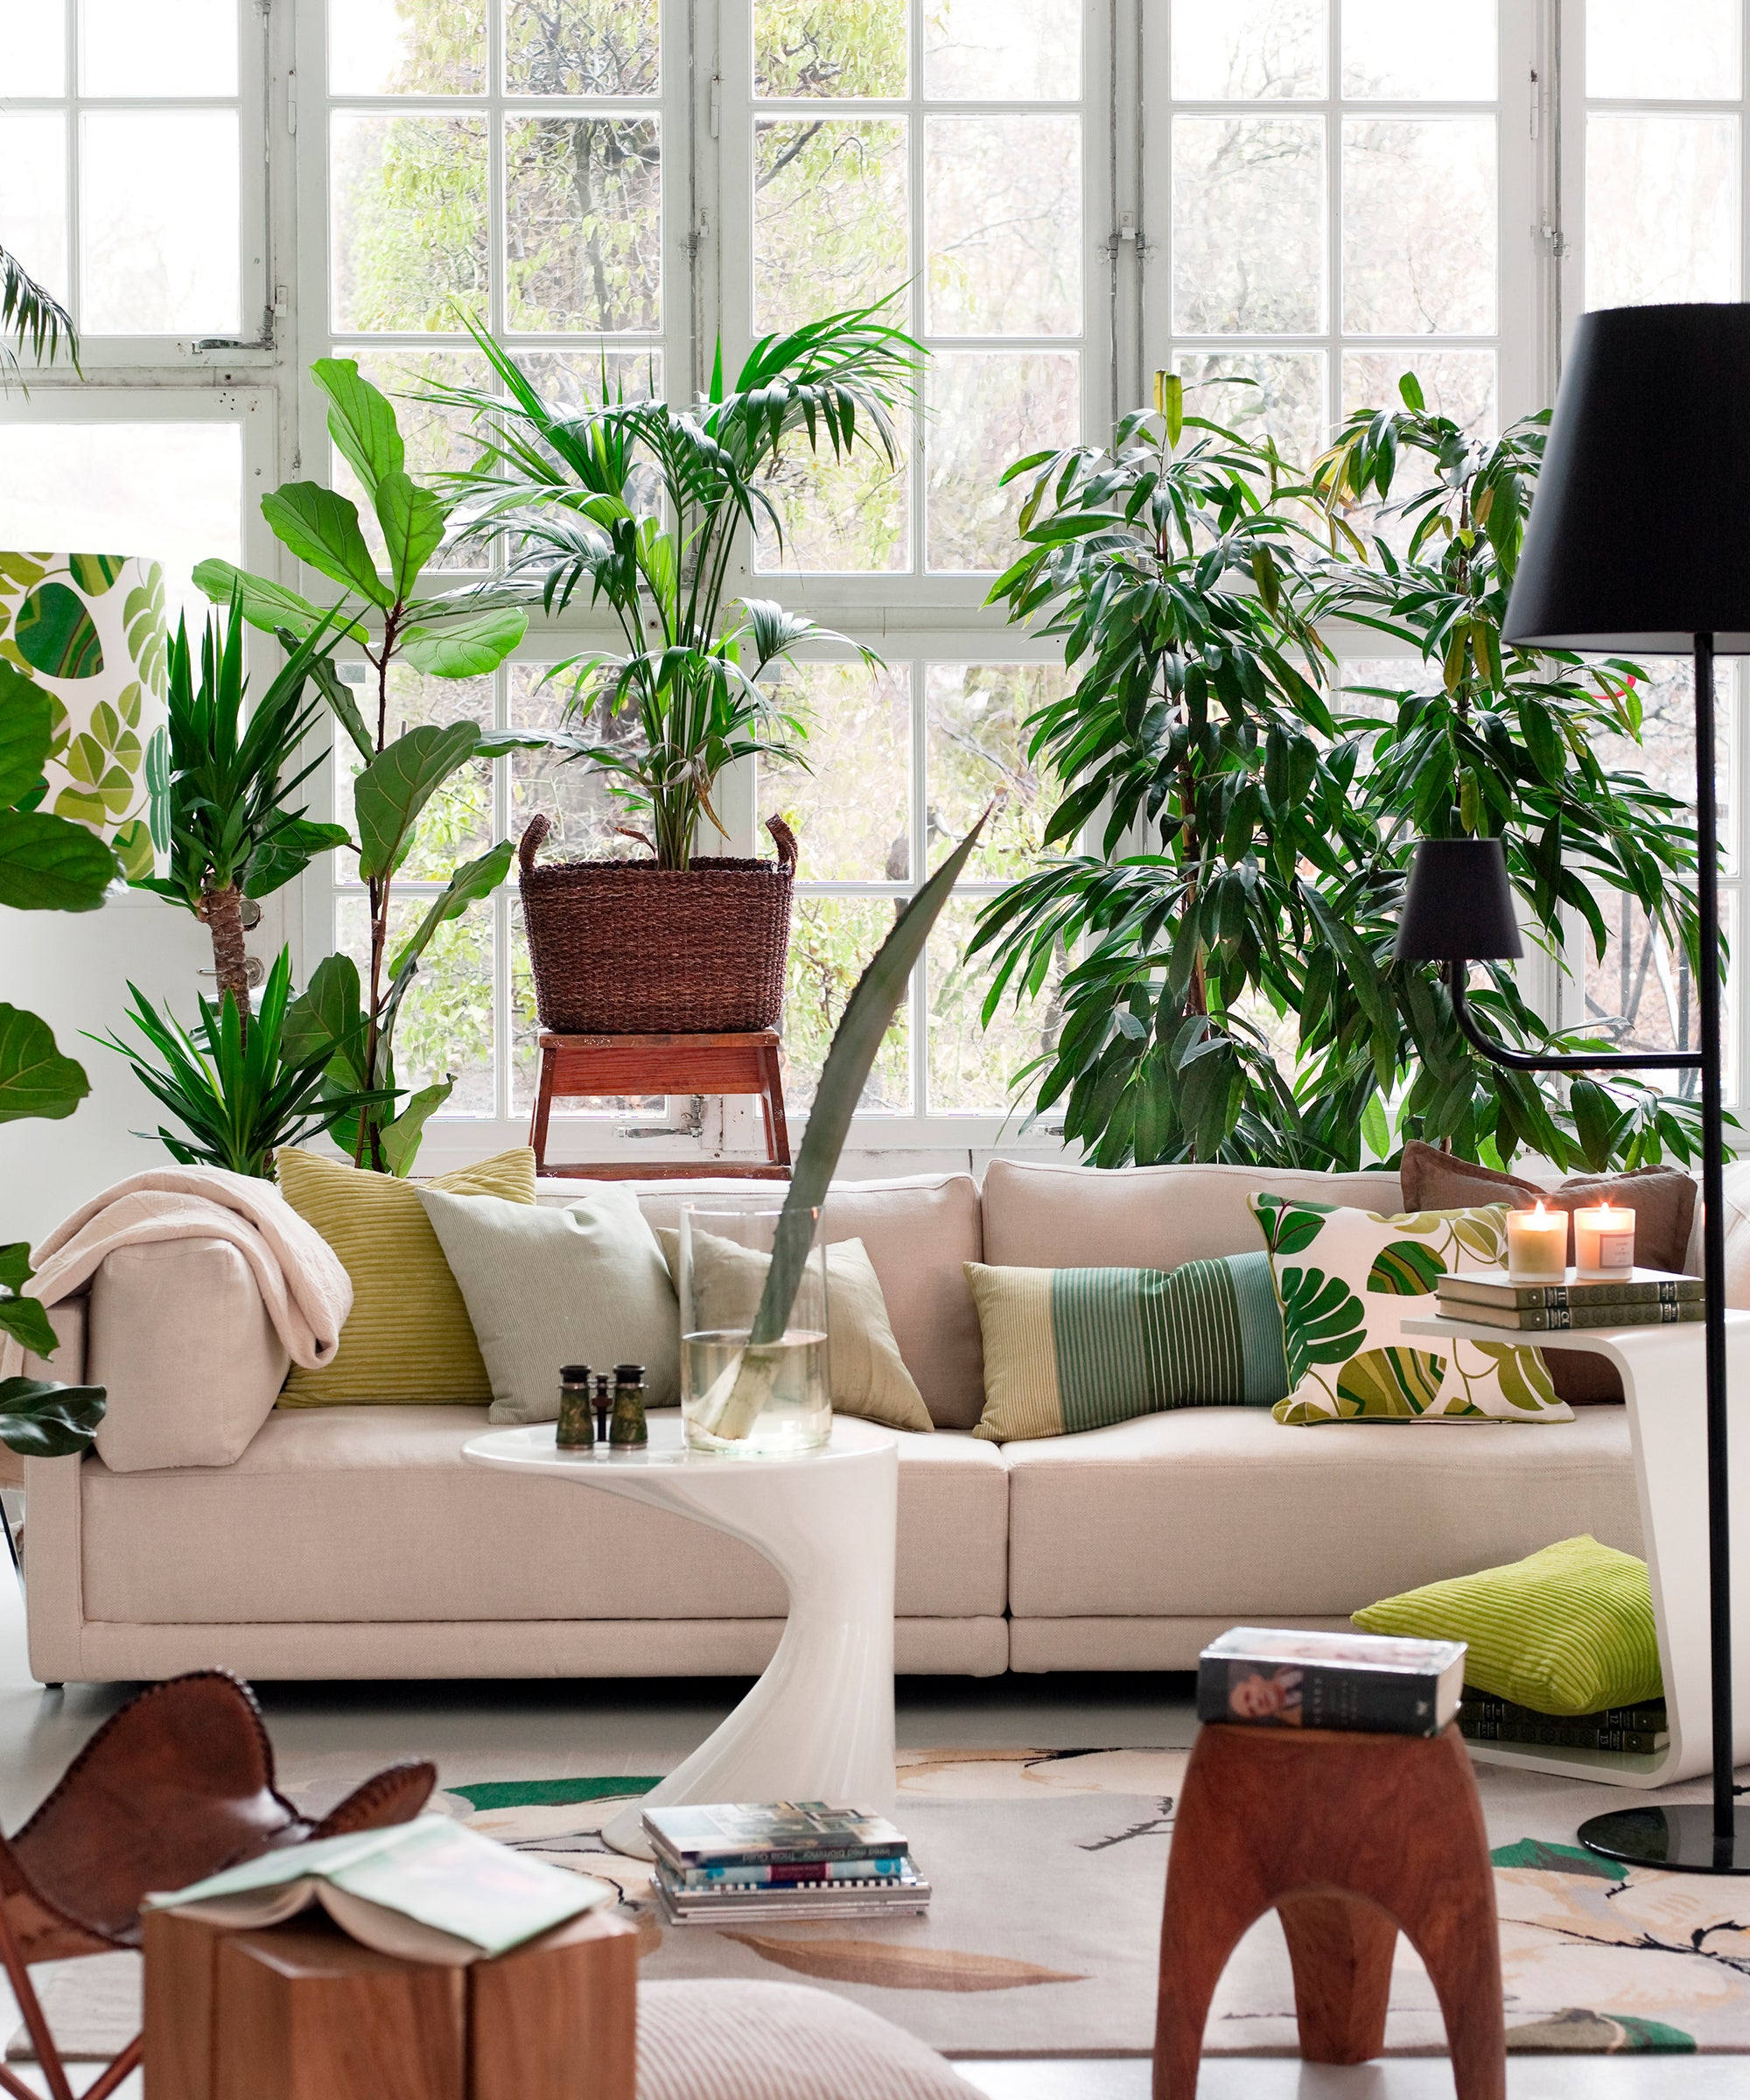 New Trends To Inspire Your Home Decorations In New Year